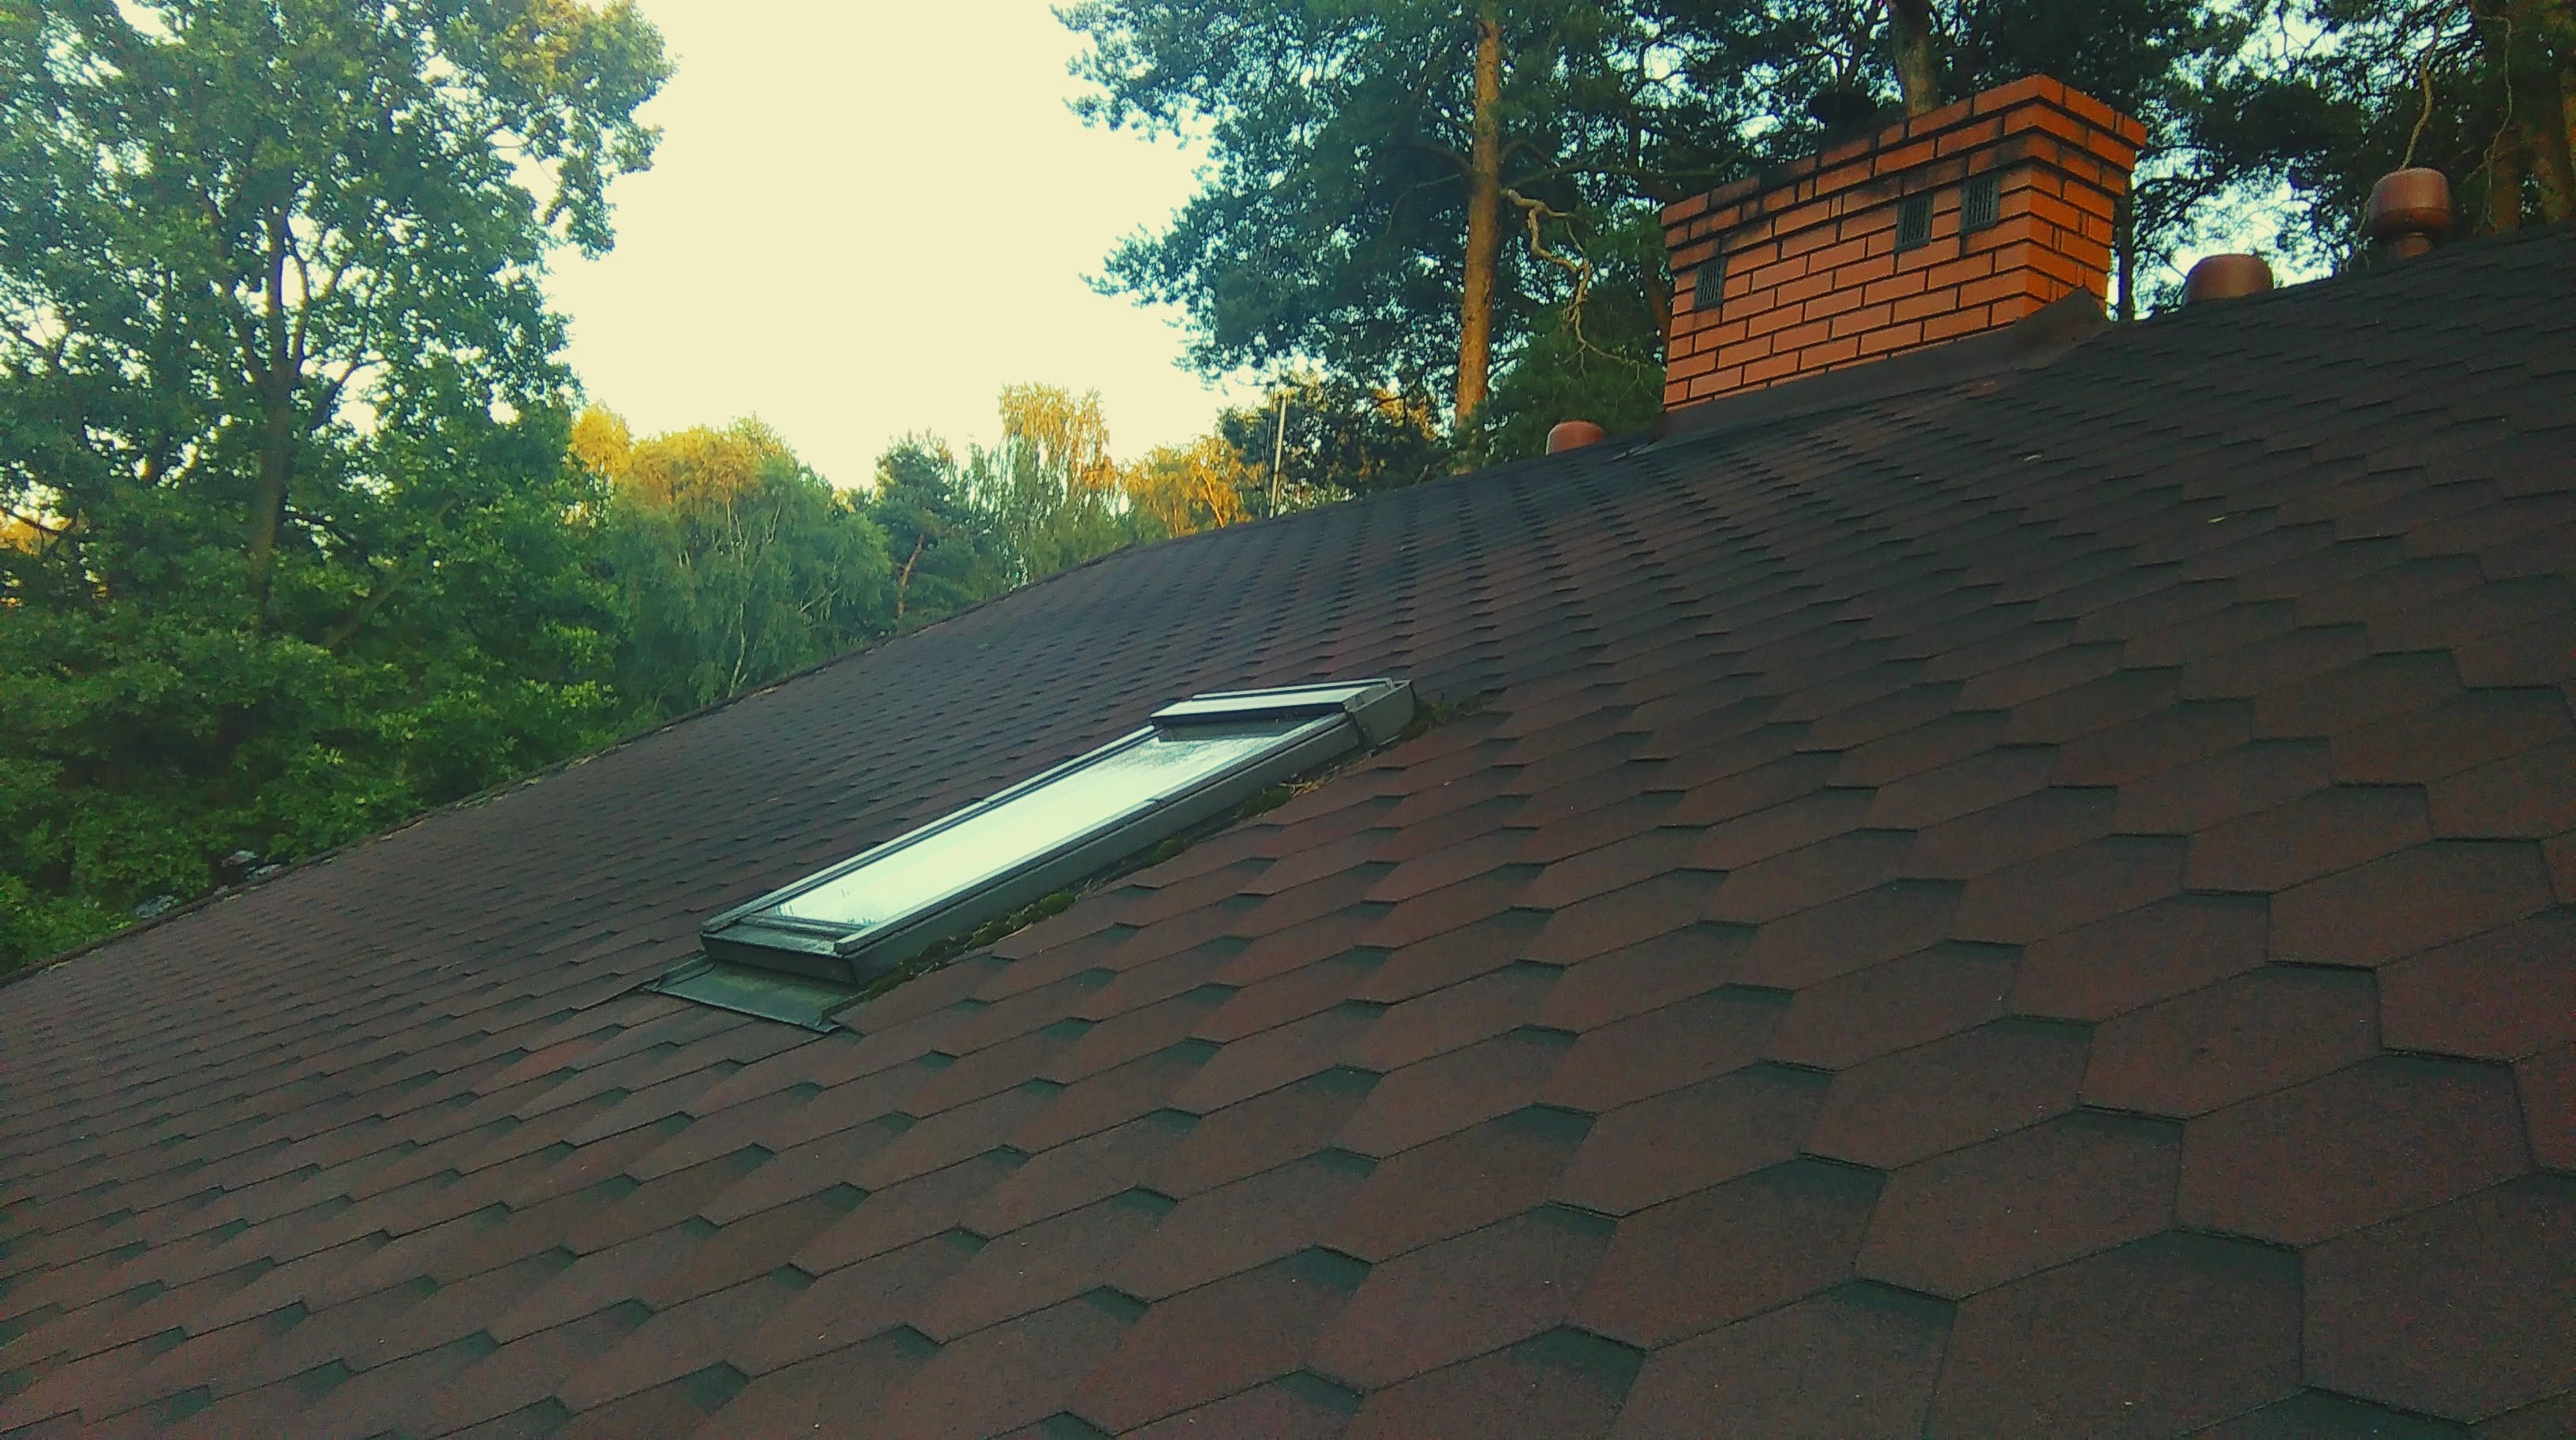 Free stock photo of roof, trees, window